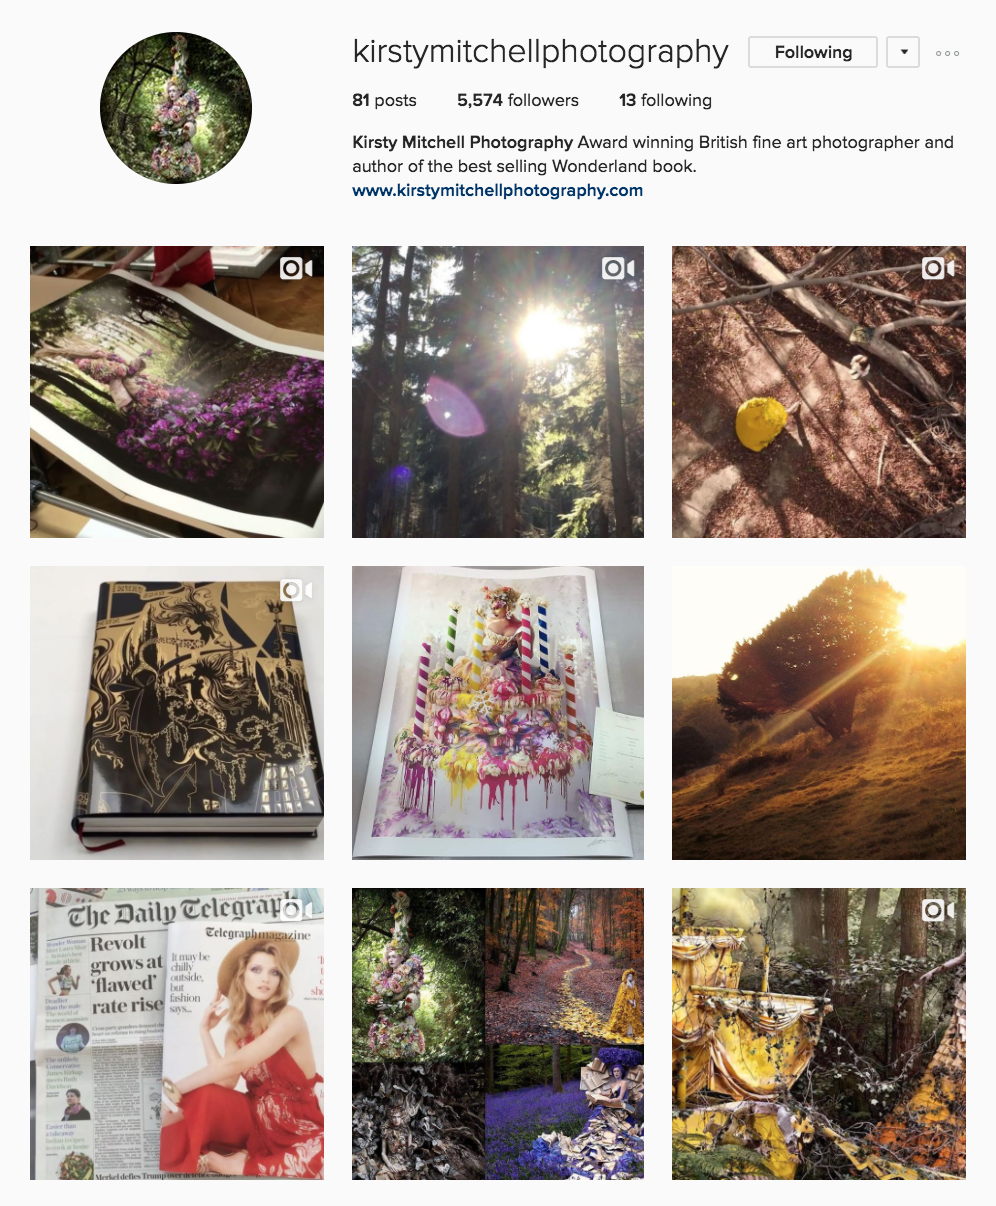 kirsty-mitchell-photography-instagram-account